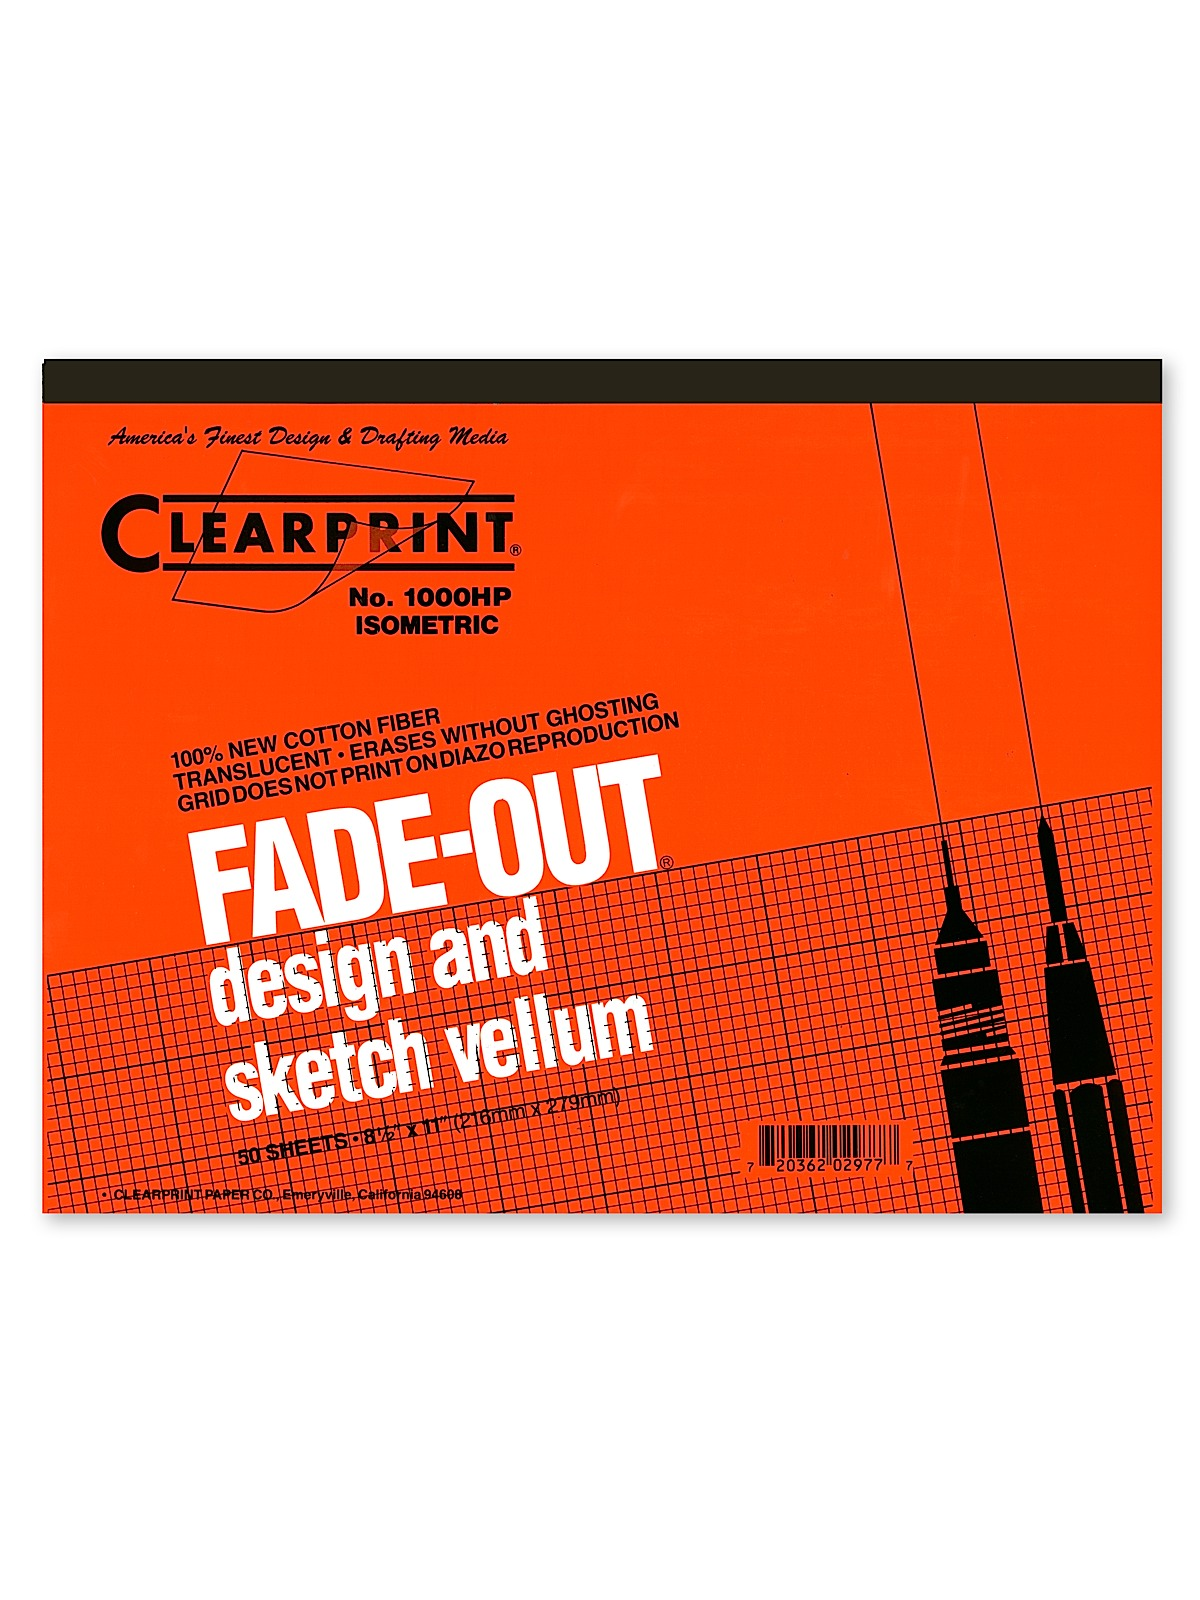 Fade-Out Design and Sketch Vellum - Isometric